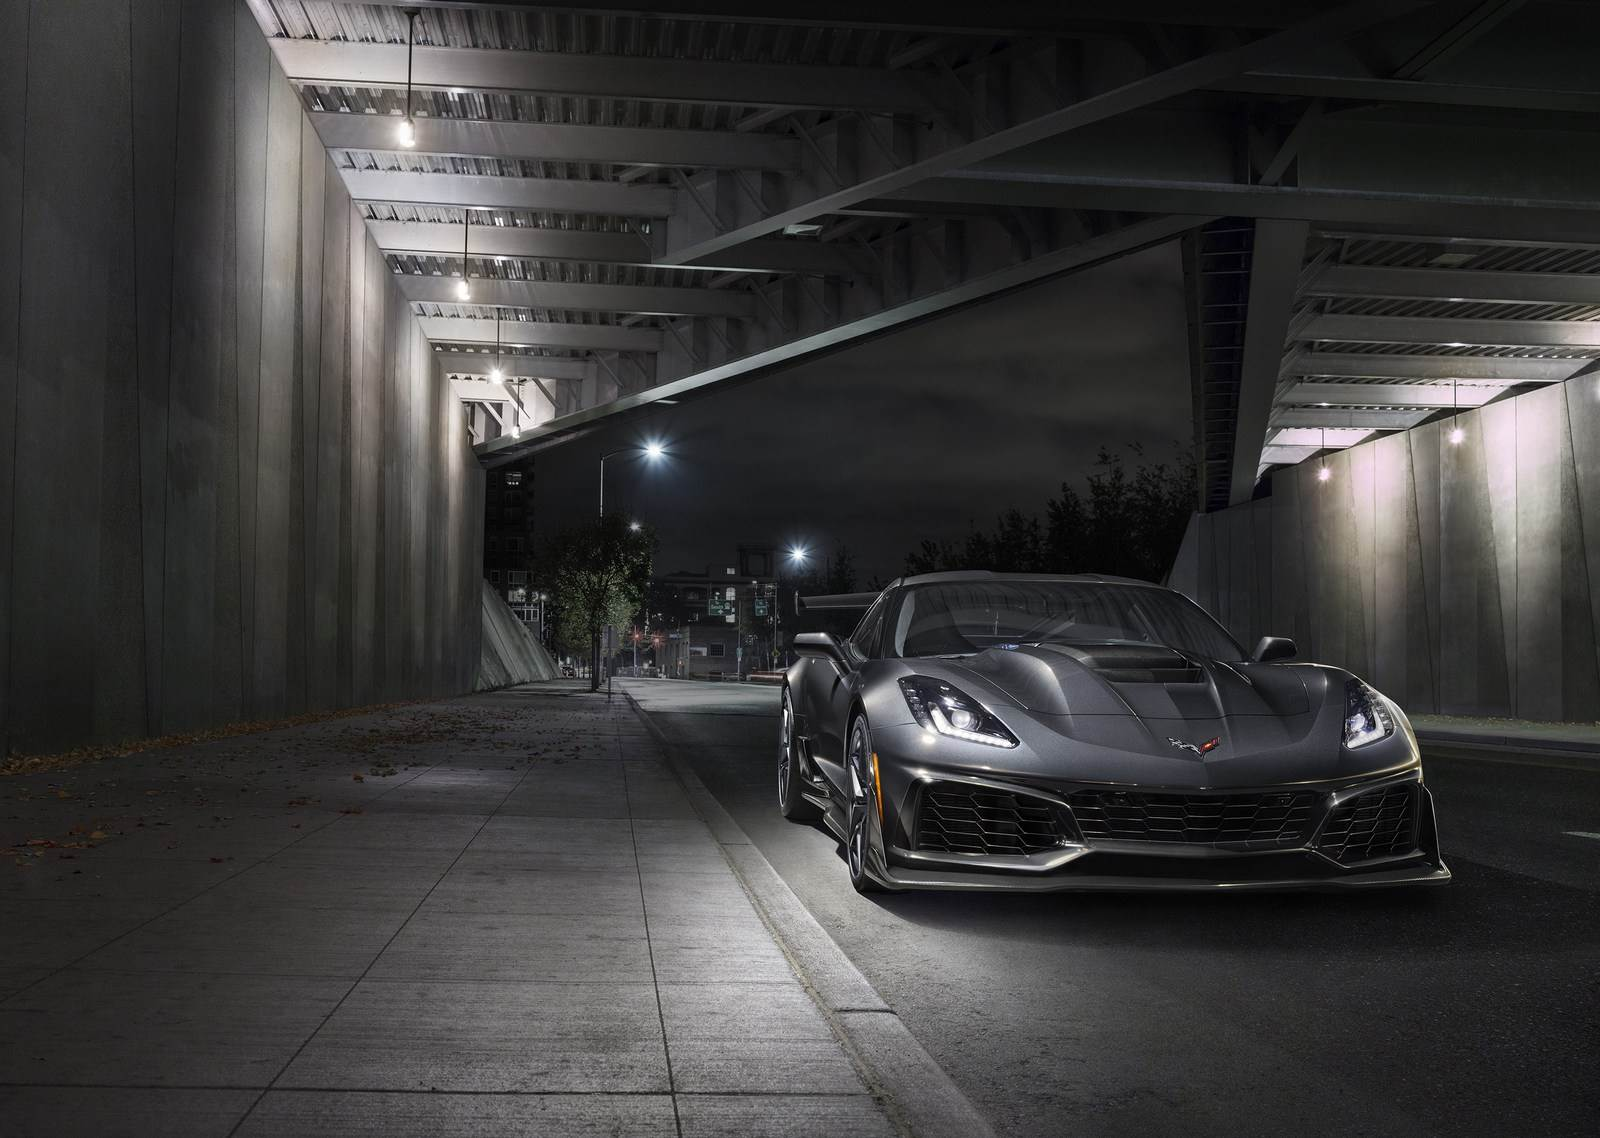 New Chevrolet Corvette ZR1 image gallery